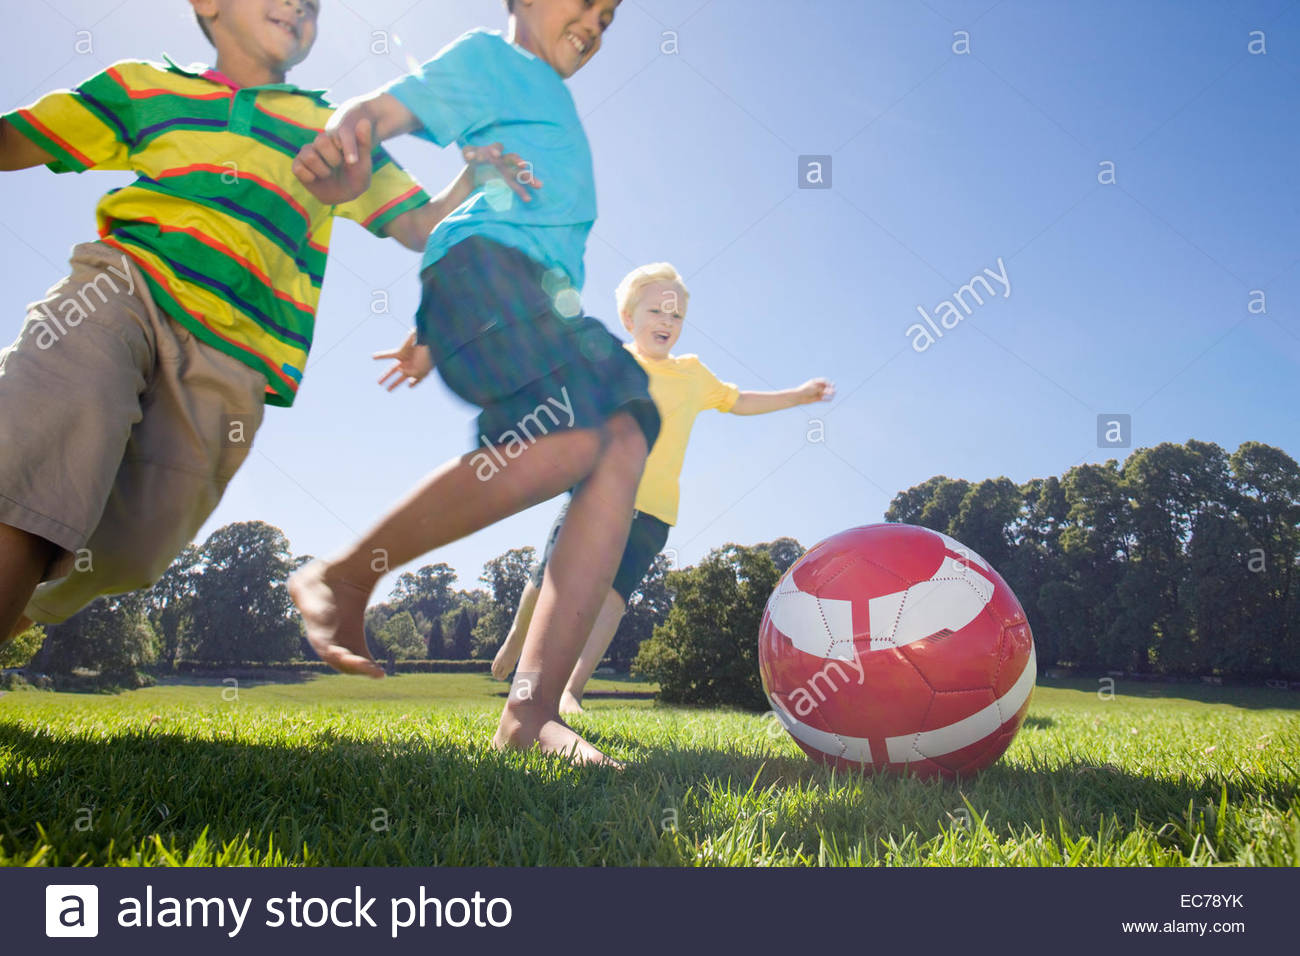 Smiling boys playing soccer in park Stock Photo